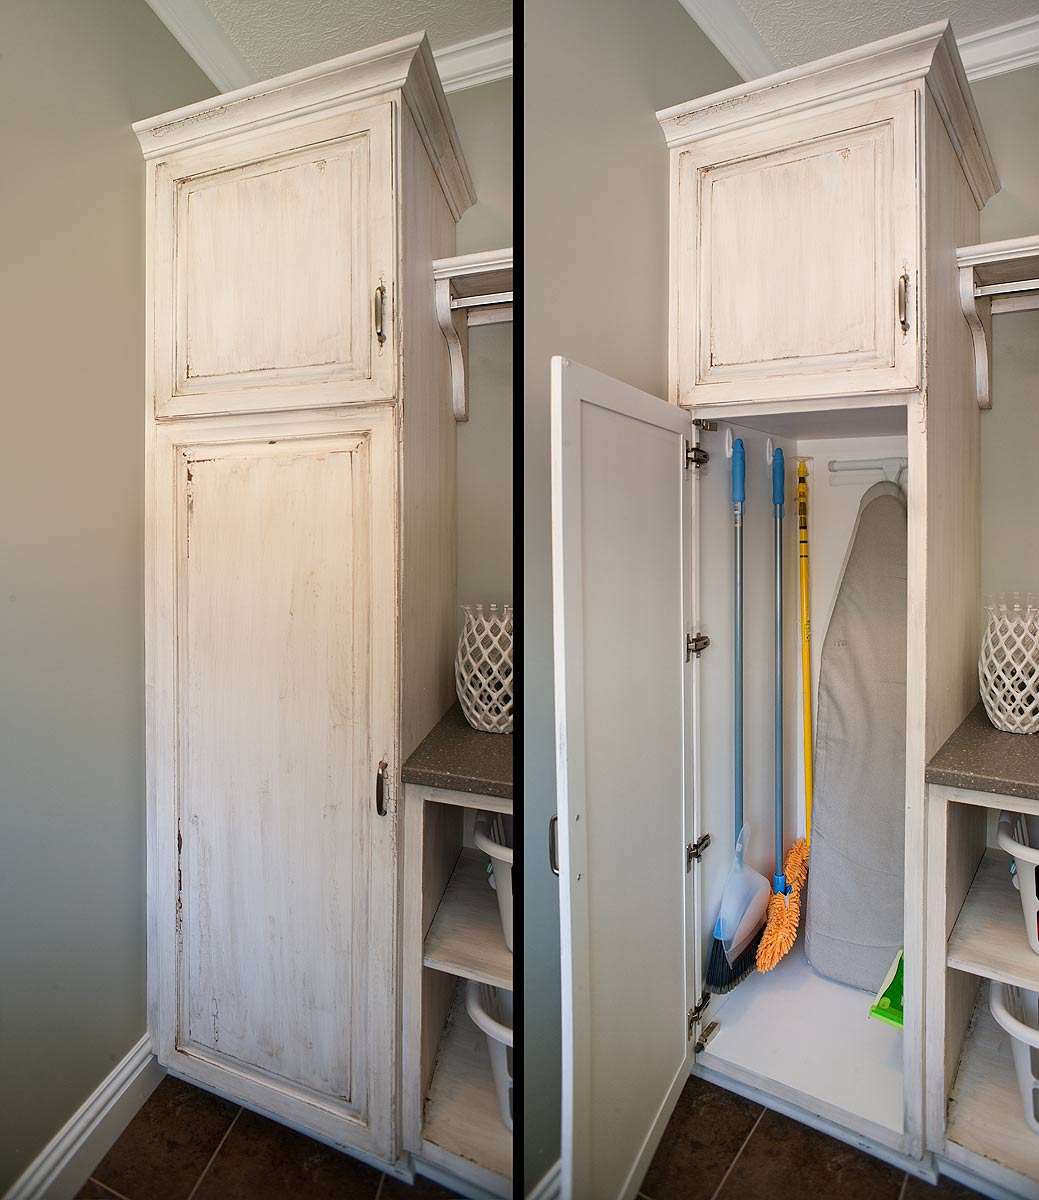 Broom closet cabinet smart and practical solution to for Kitchen closet ideas